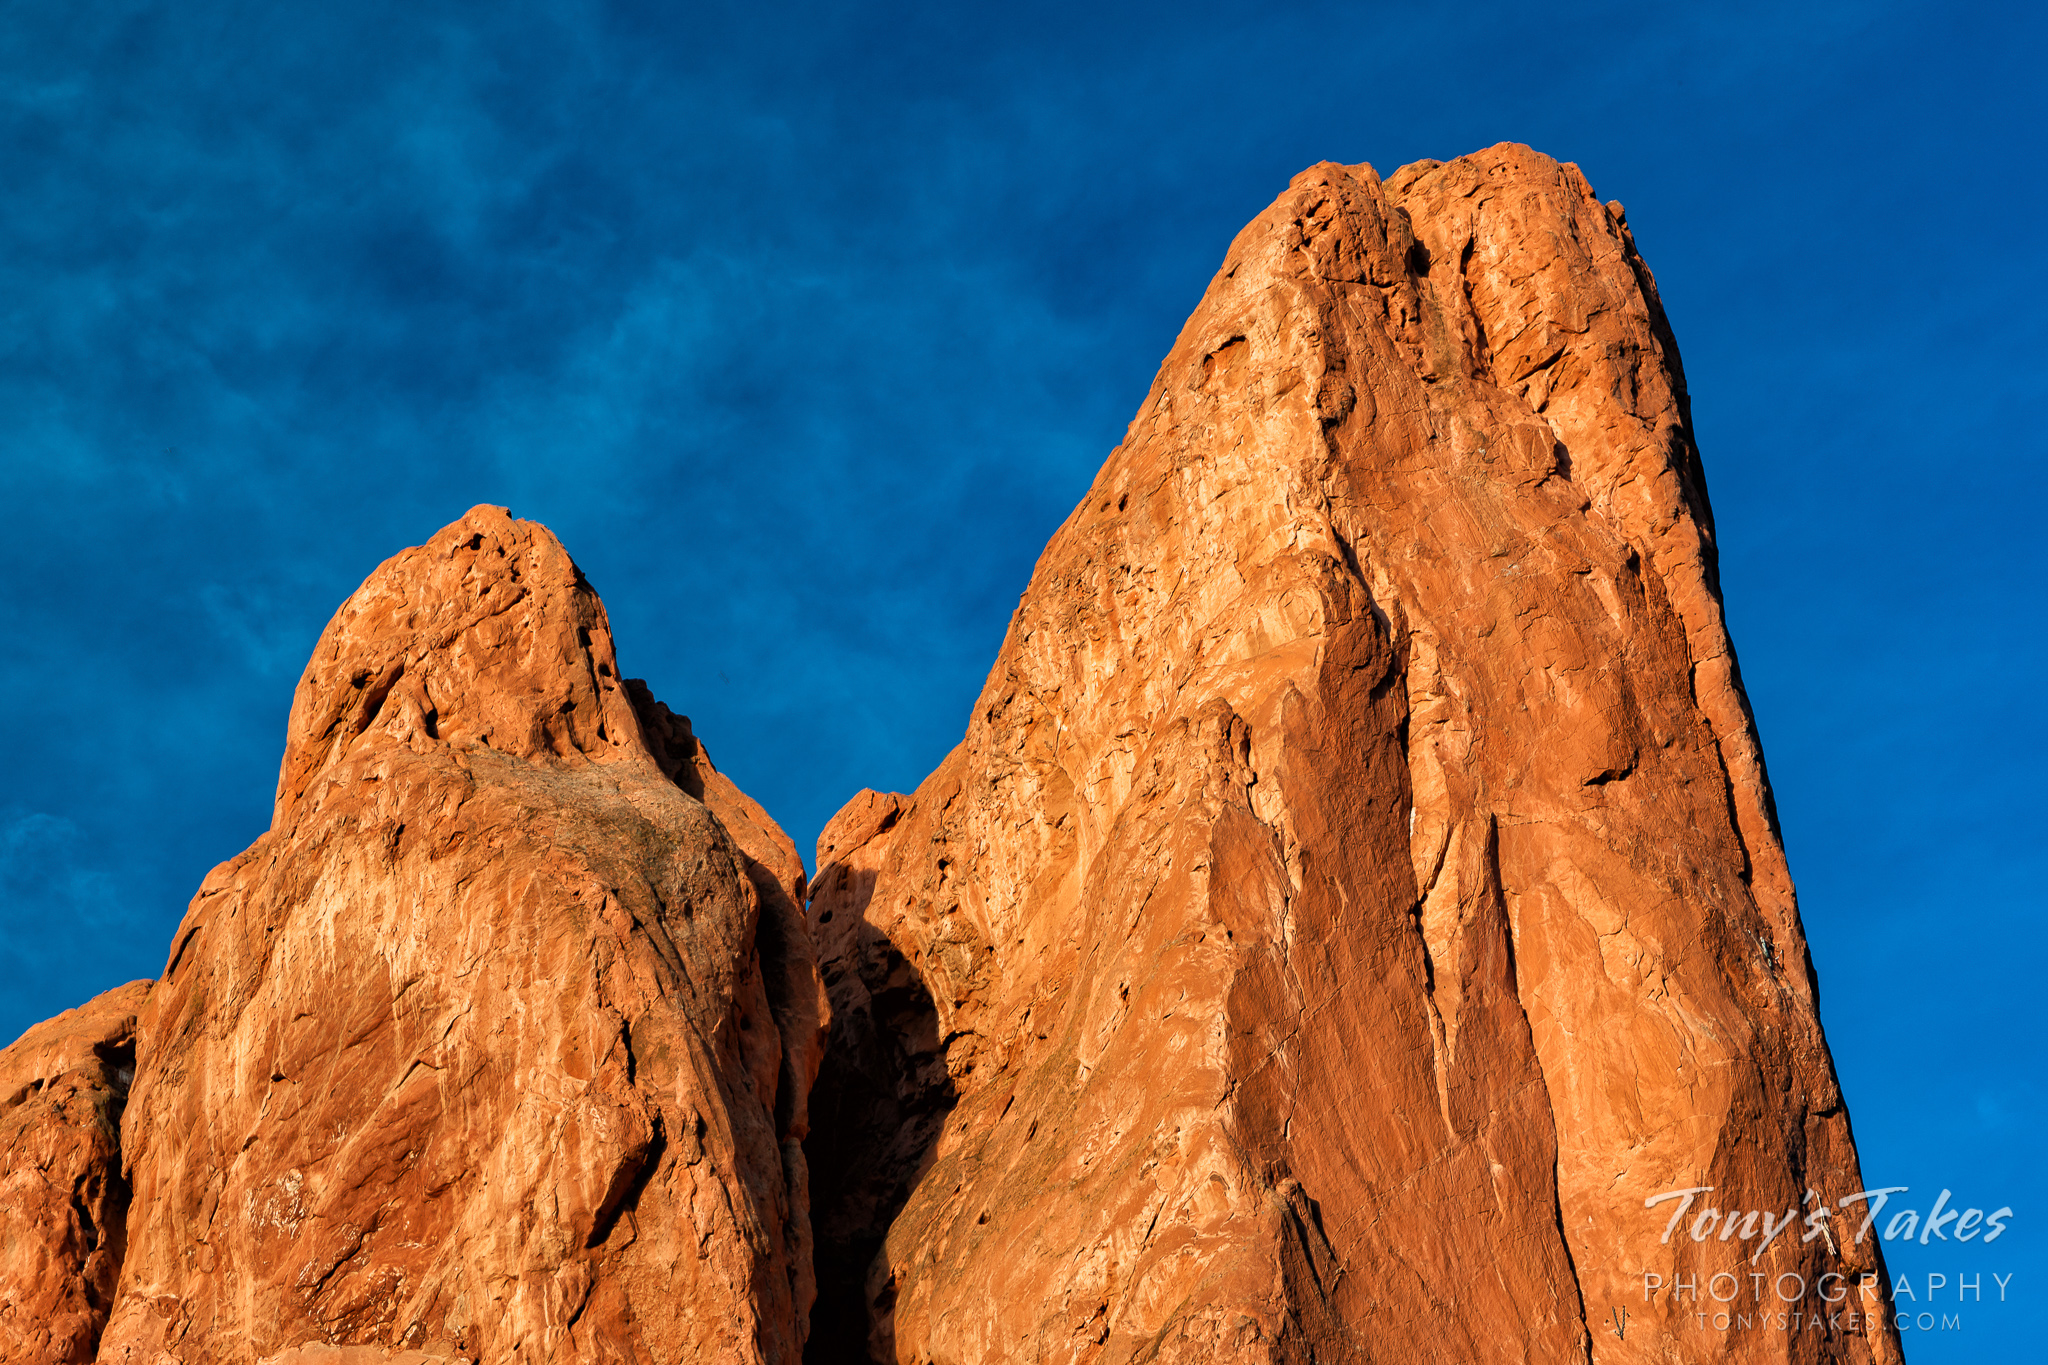 The Tower of Babel in the Garden of the Gods is illuminated by the rising sun. (© Tony's Takes)